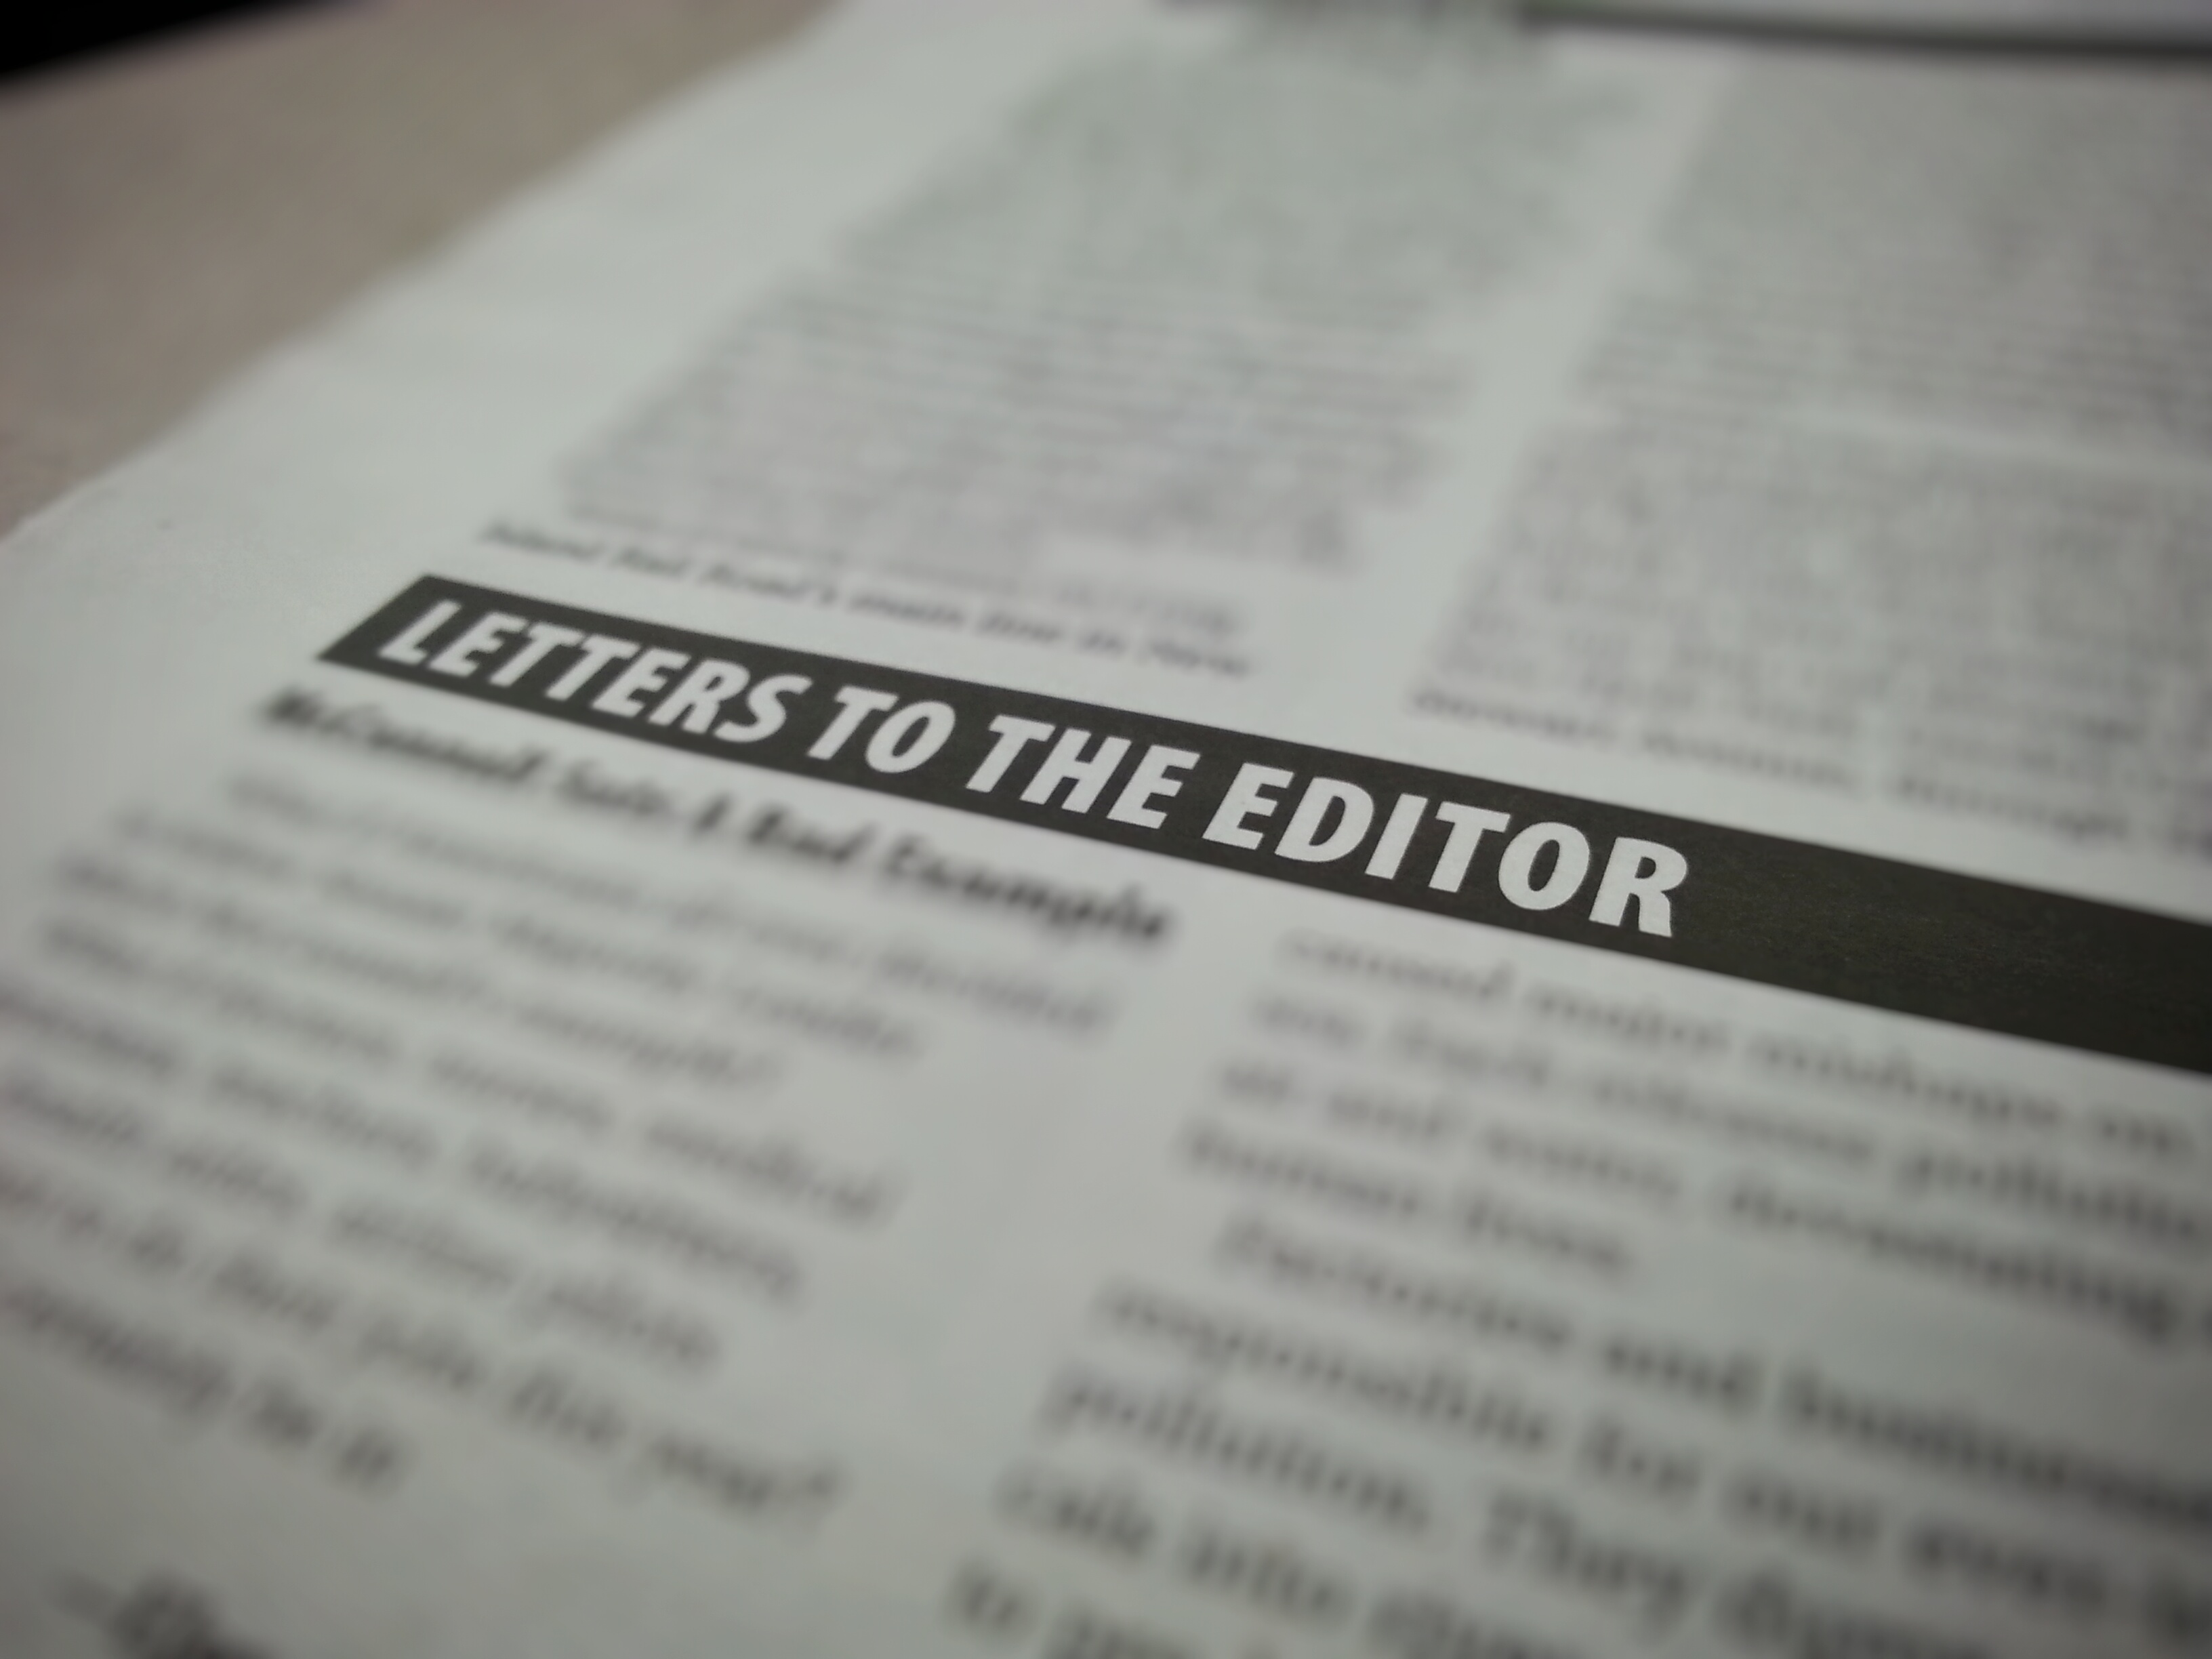 Letter to the Editor Featured Image